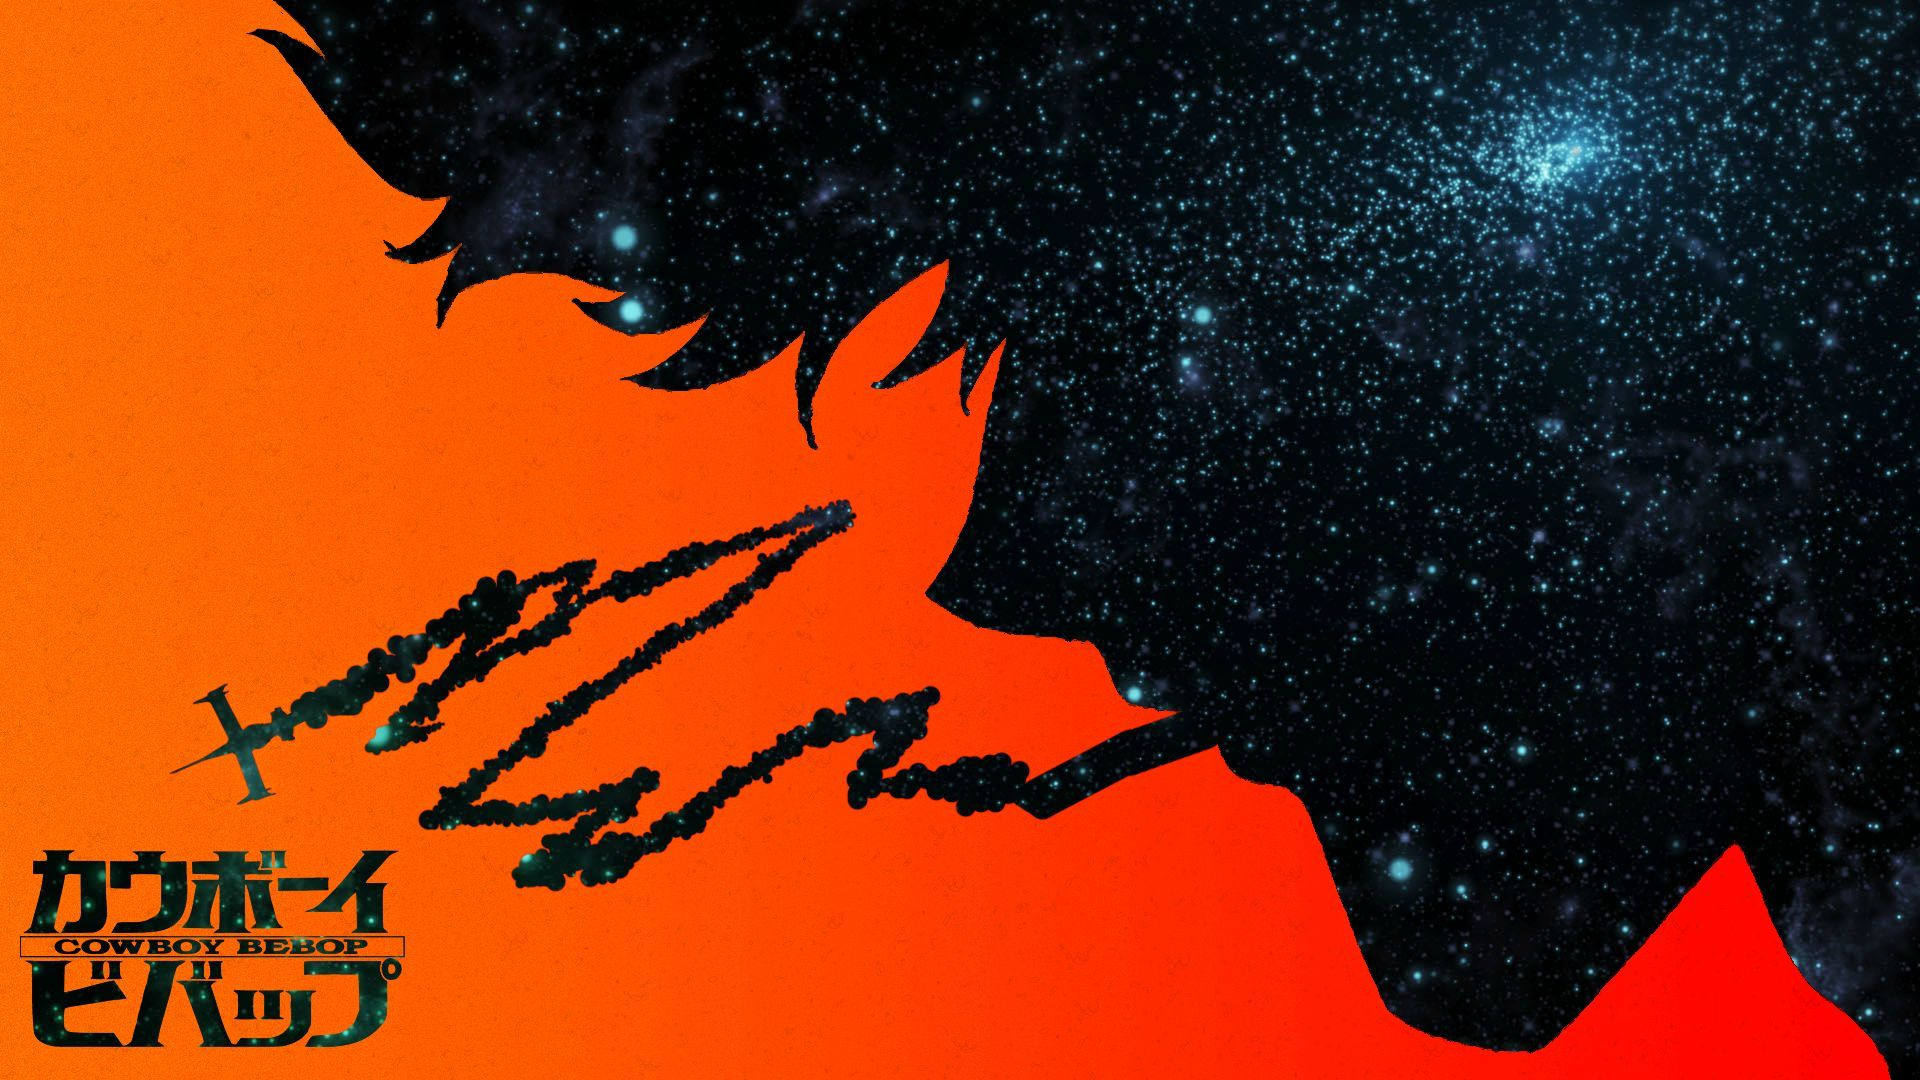 Cowboy Bebop Wallpapers Top Free Cowboy Bebop Backgrounds